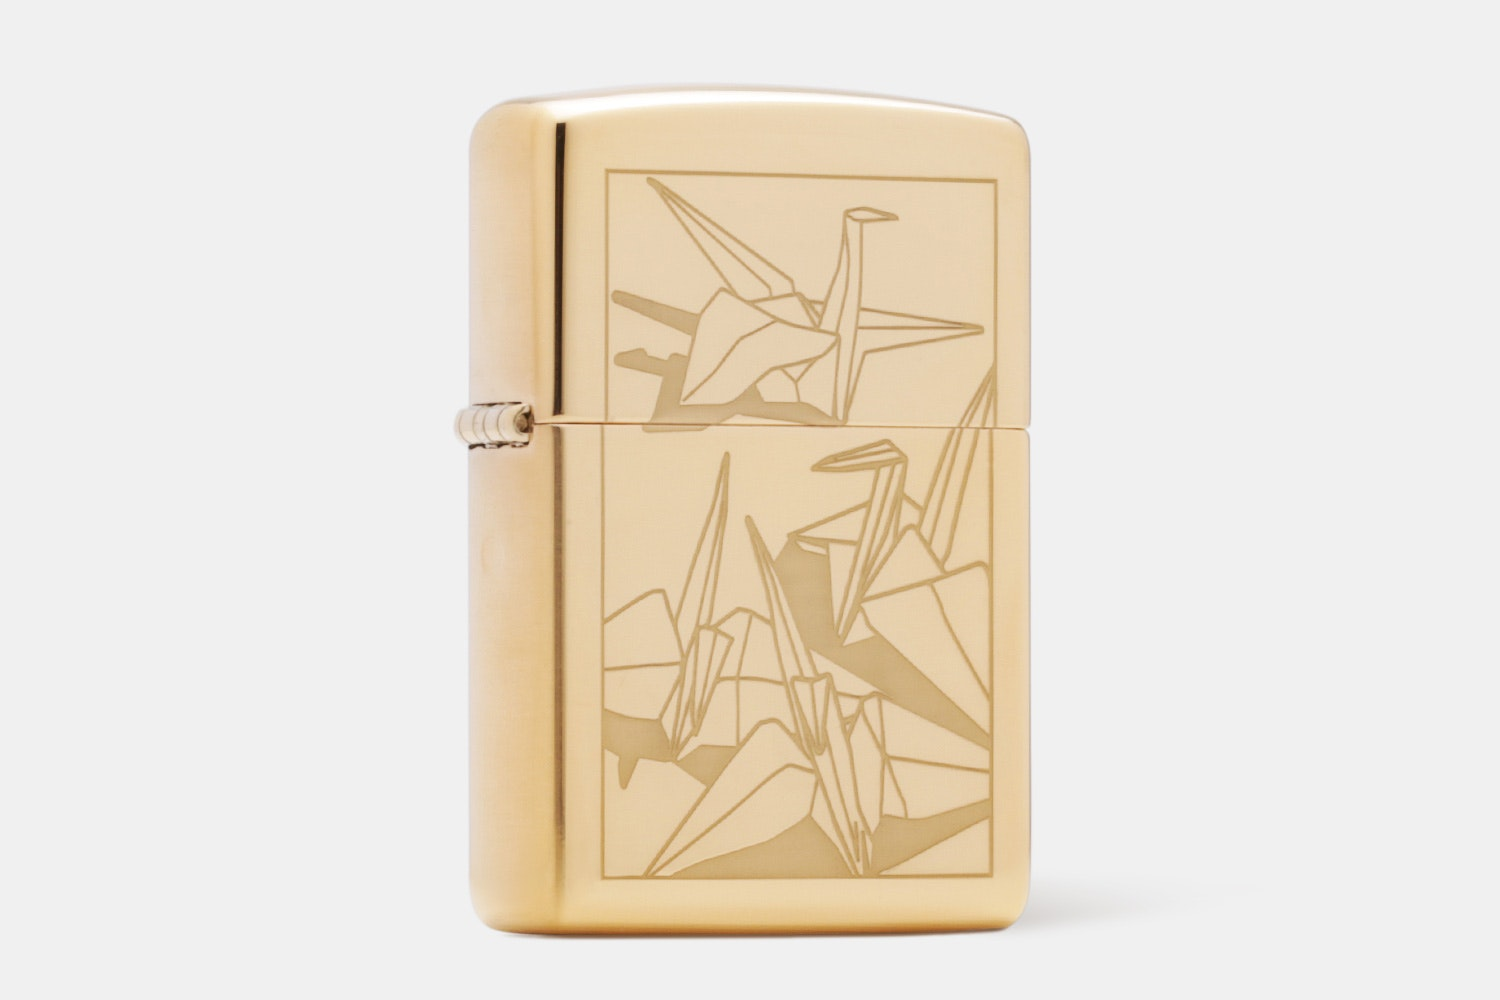 Massdrop Community Designed Zippo Paper Cranes Price Reviews